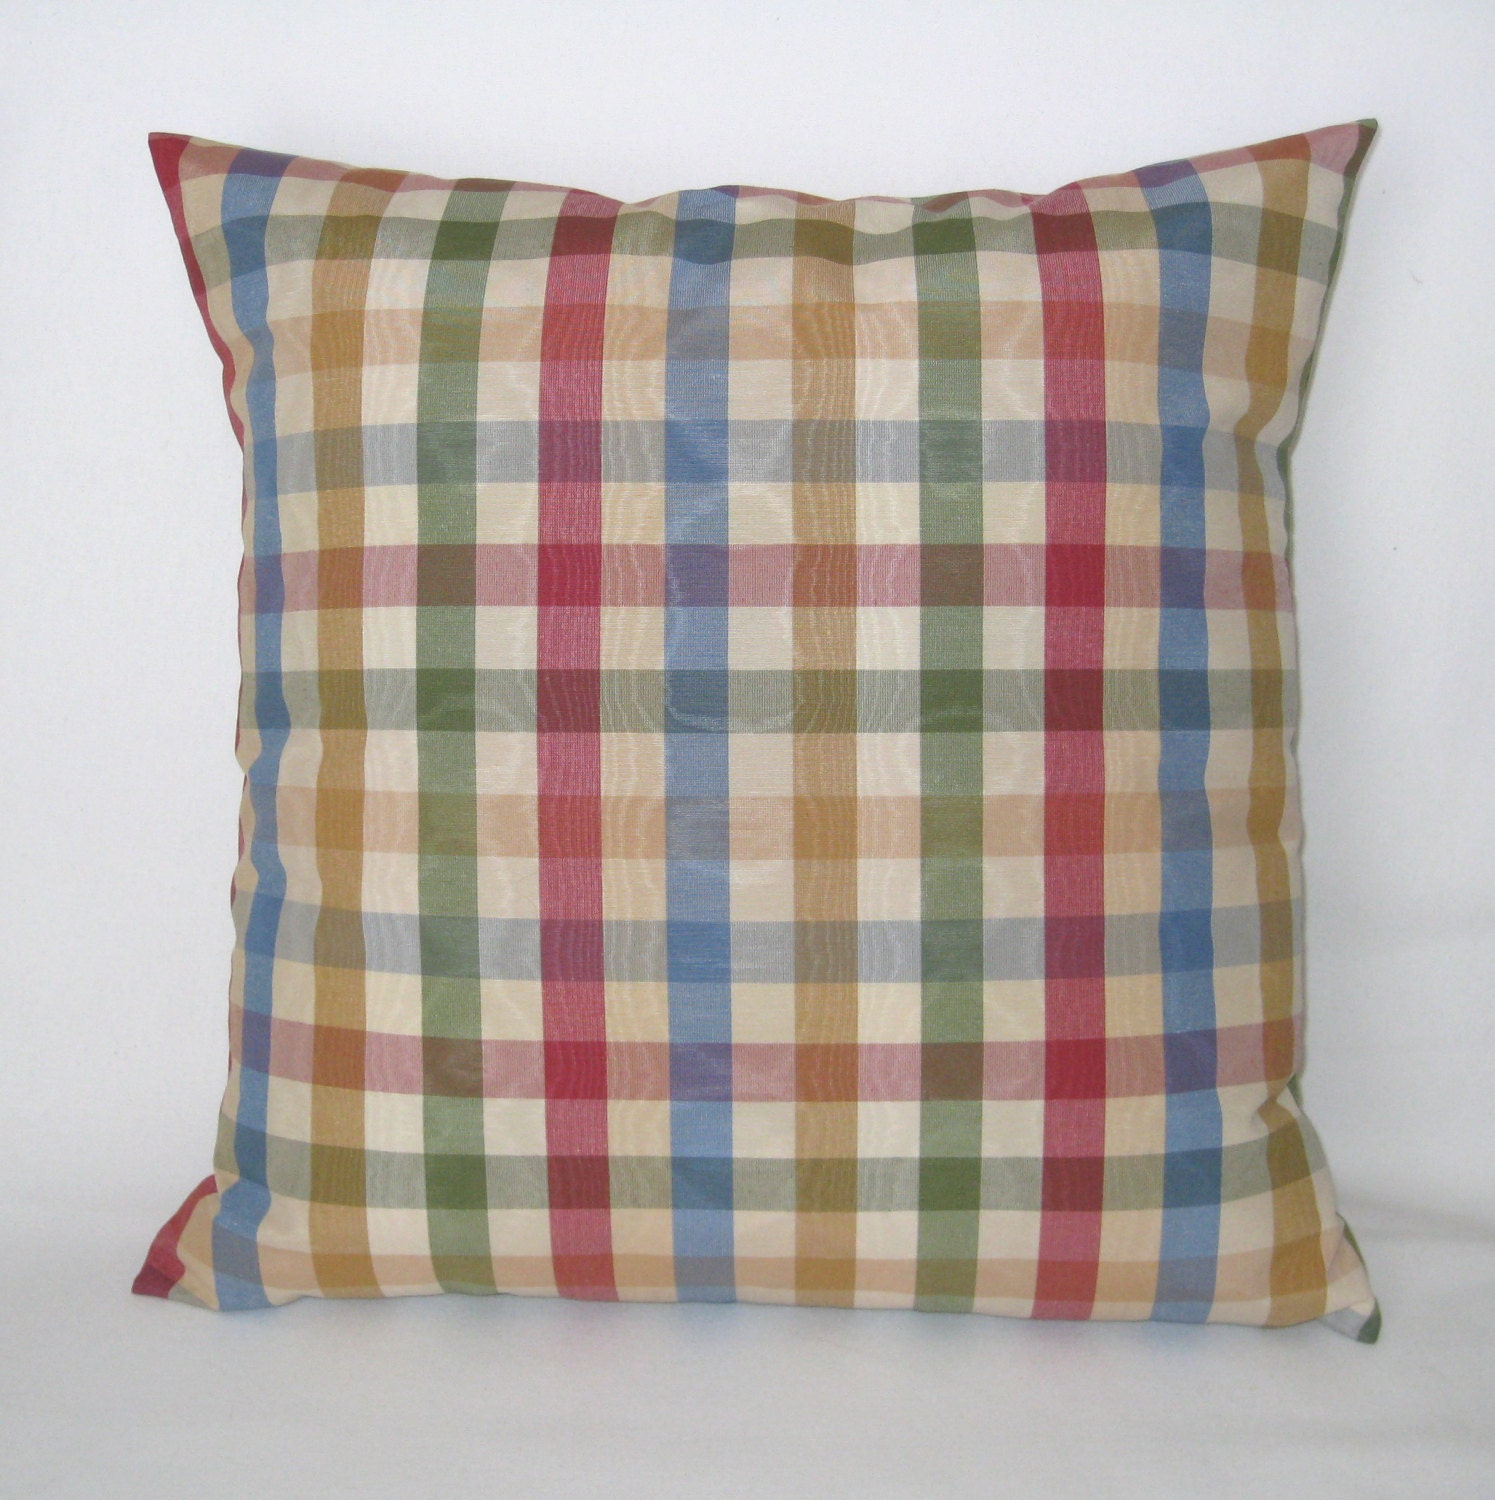 ACCENT PILLOW COVER 20 x 20 Throw Pillow